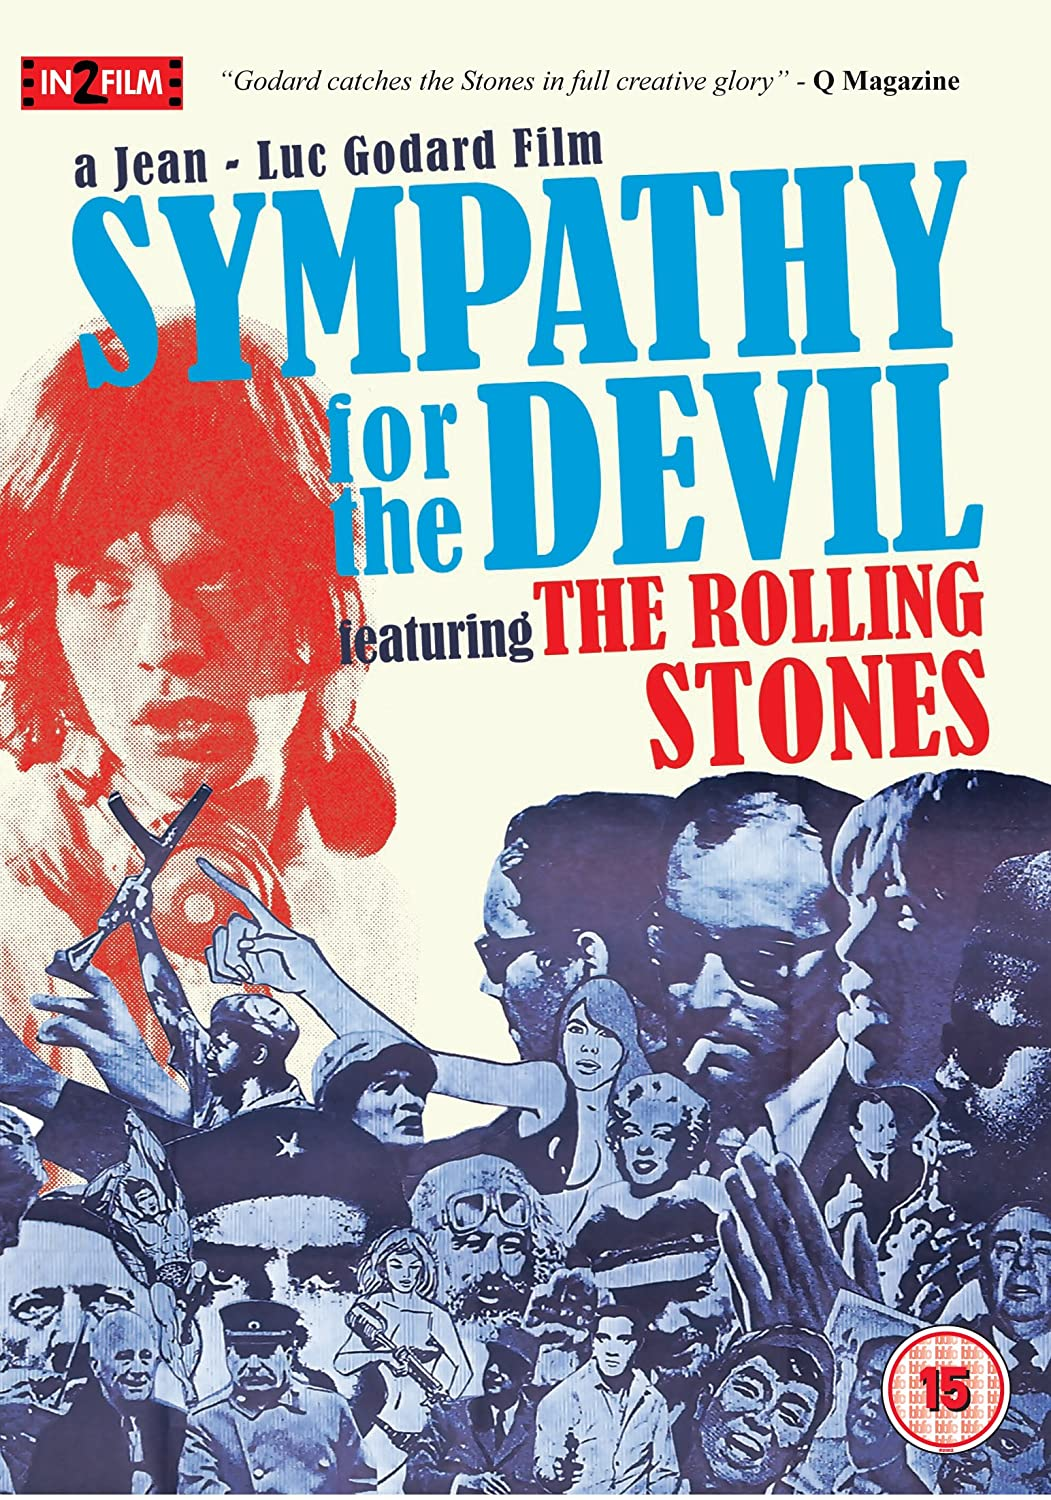 Sympathy for the Devil - Rolling Stones - Godard